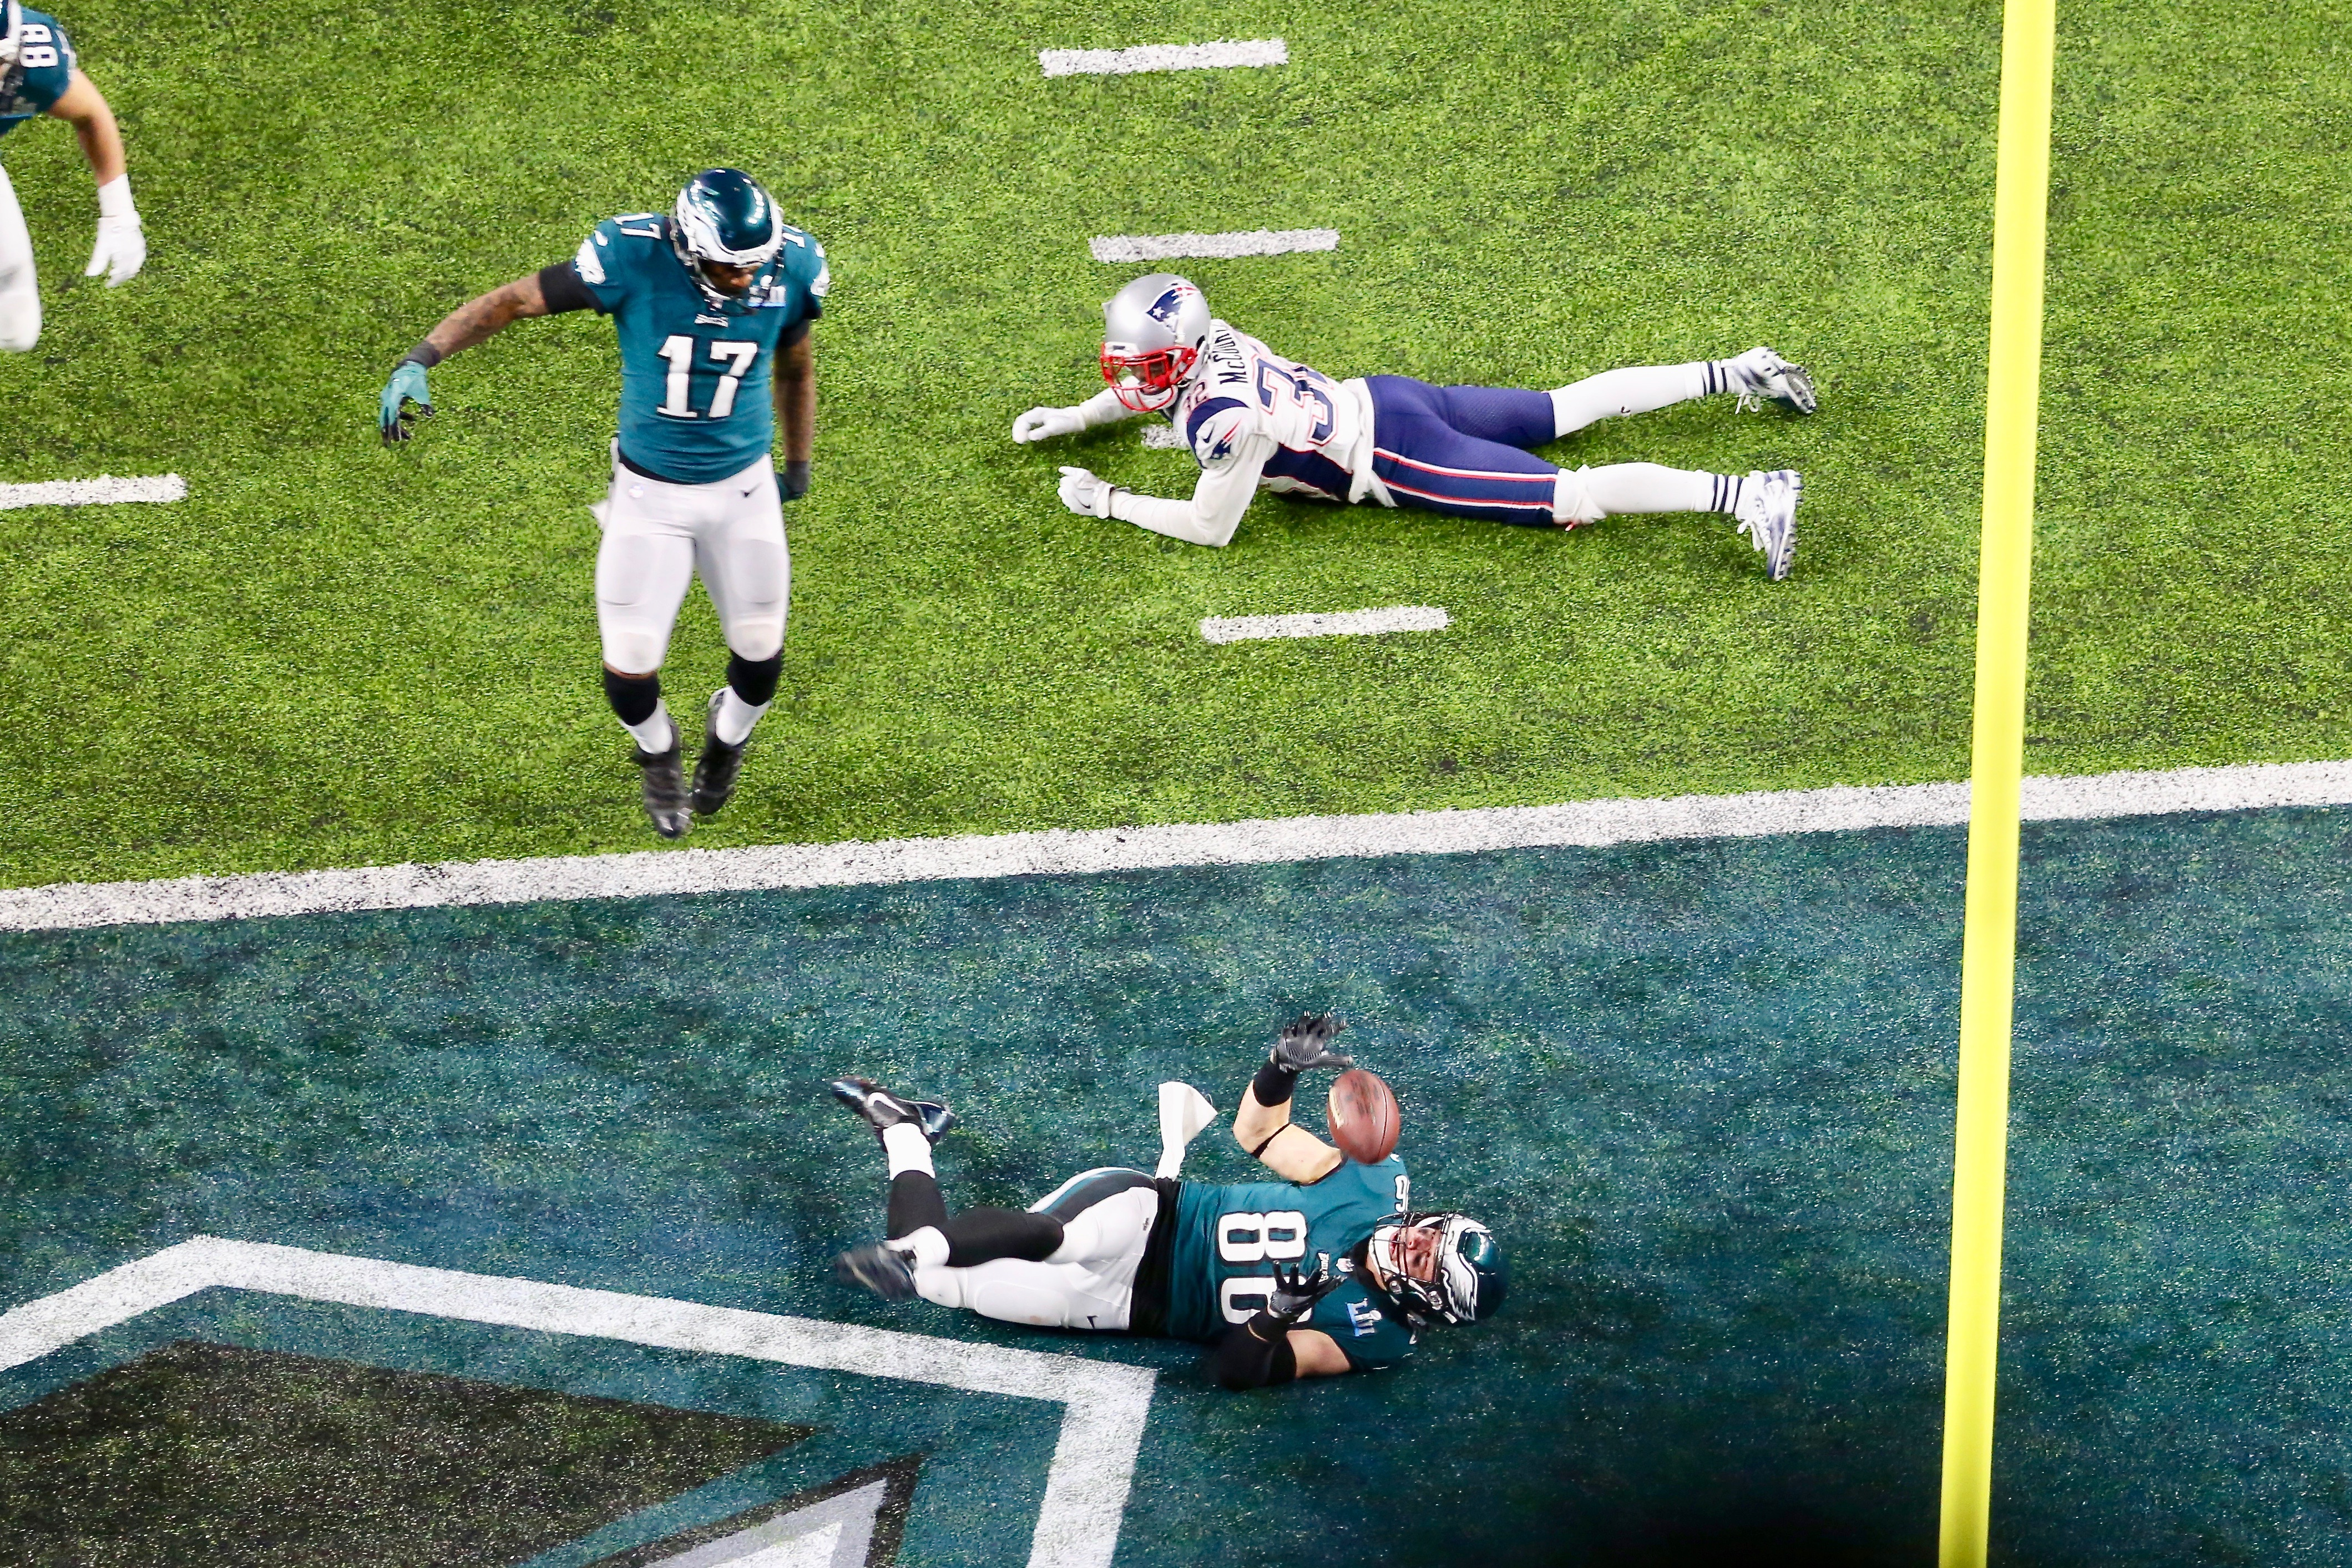 Zach Ertz of the Philadelphia Eagles struggles to maintain possession of the football after scoring the game-winning touchdown in Super Bowl LII (Brian Allen/VOA)